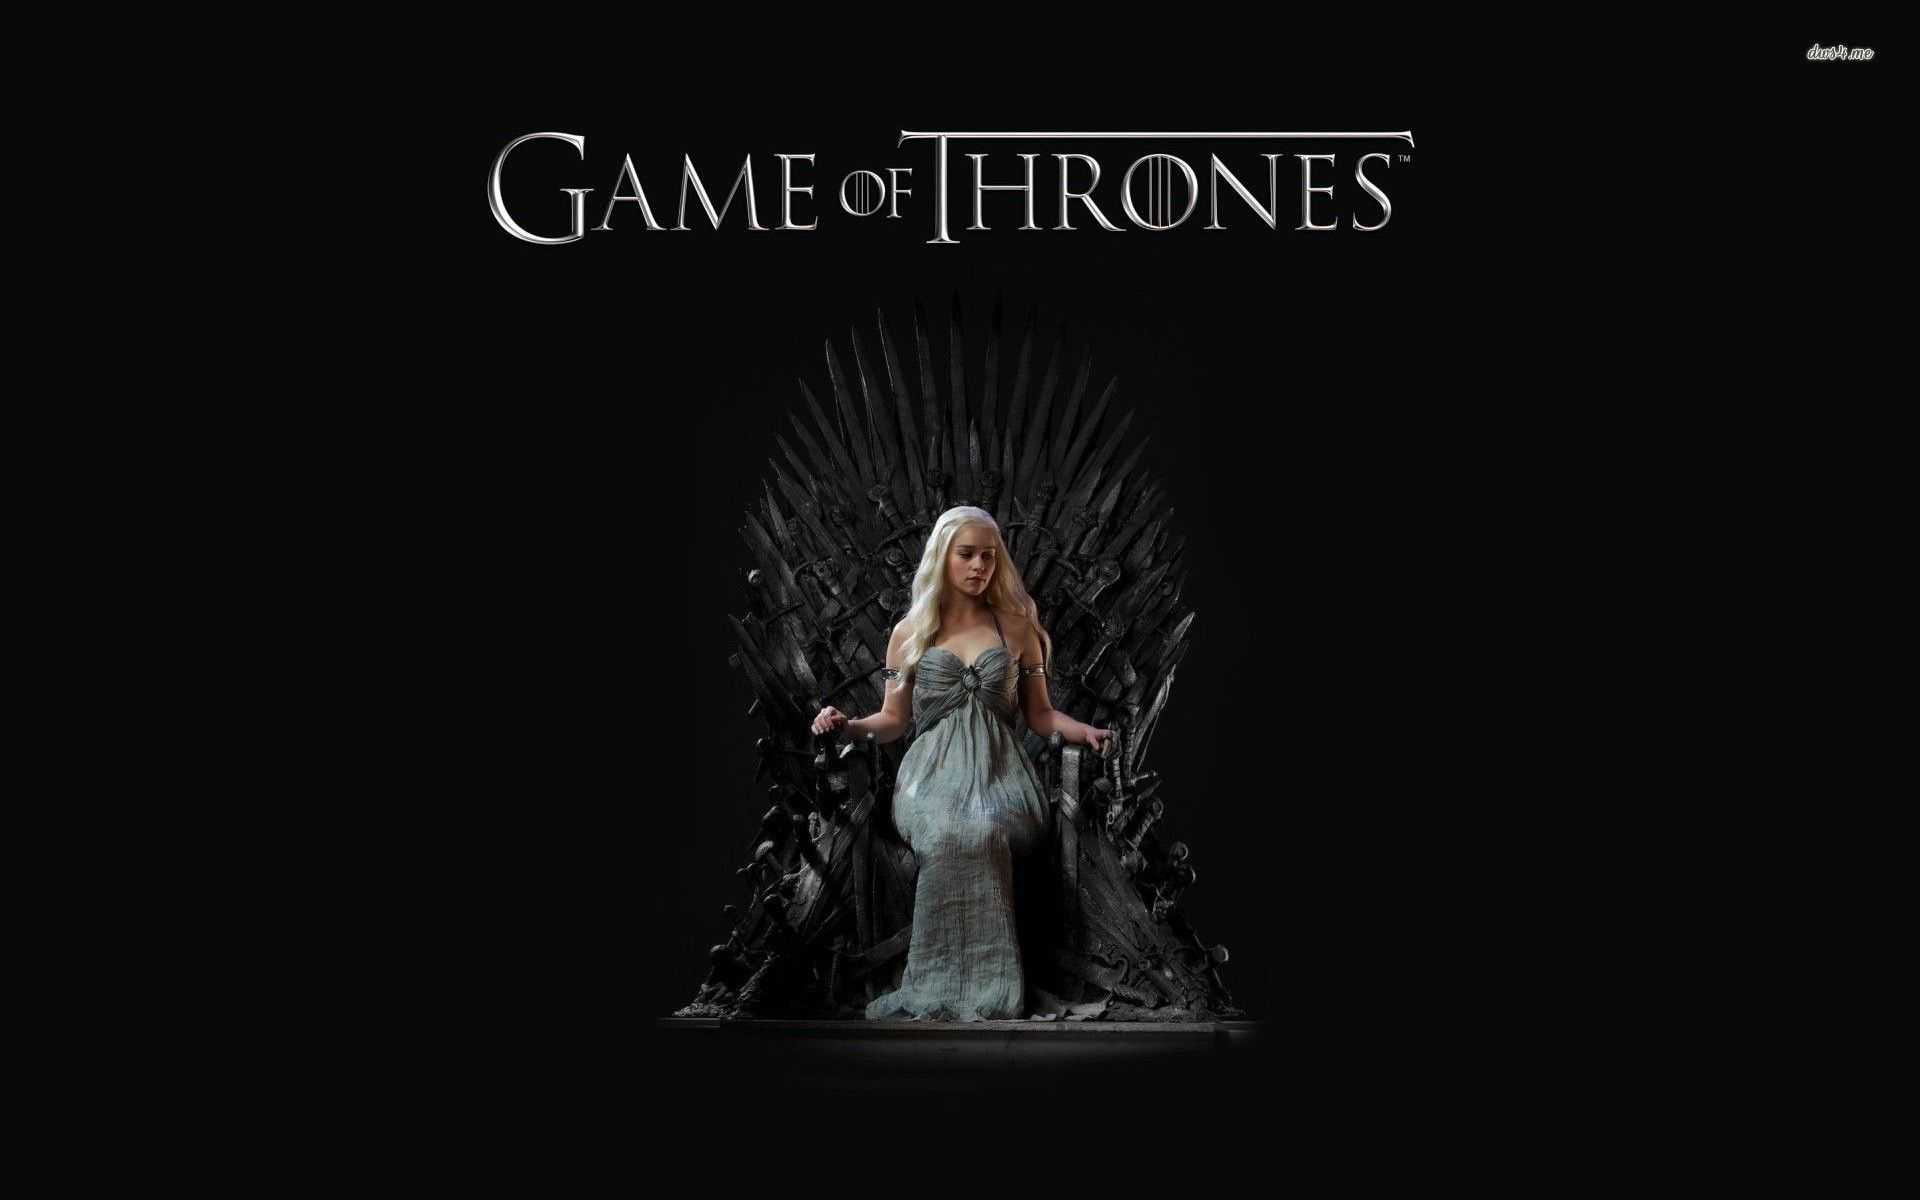 Game Of Thrones Wallpaper Hd 1920x1200 For Windows 7 Daenerys